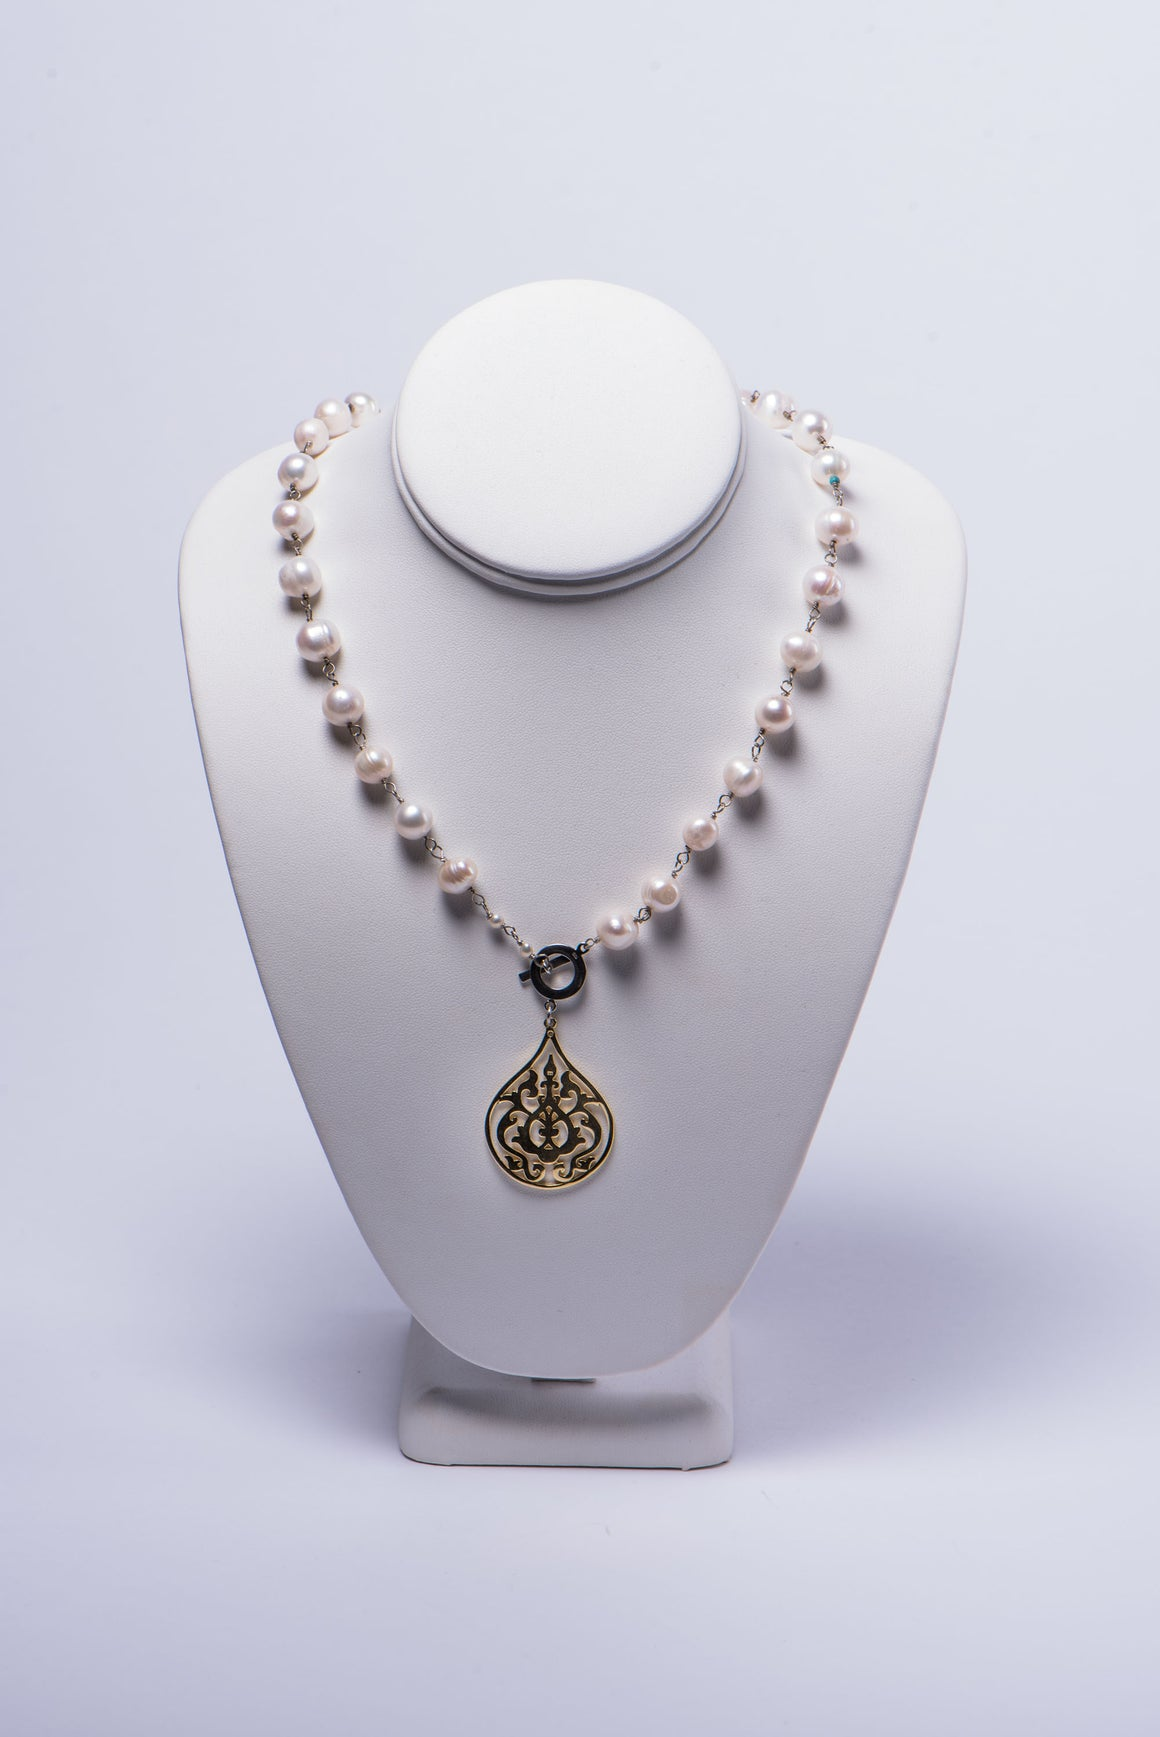 NADIA DAJANI - NECKLACE - PEARLS WITH GOLD-PLATED ARABESQUE PENDANT